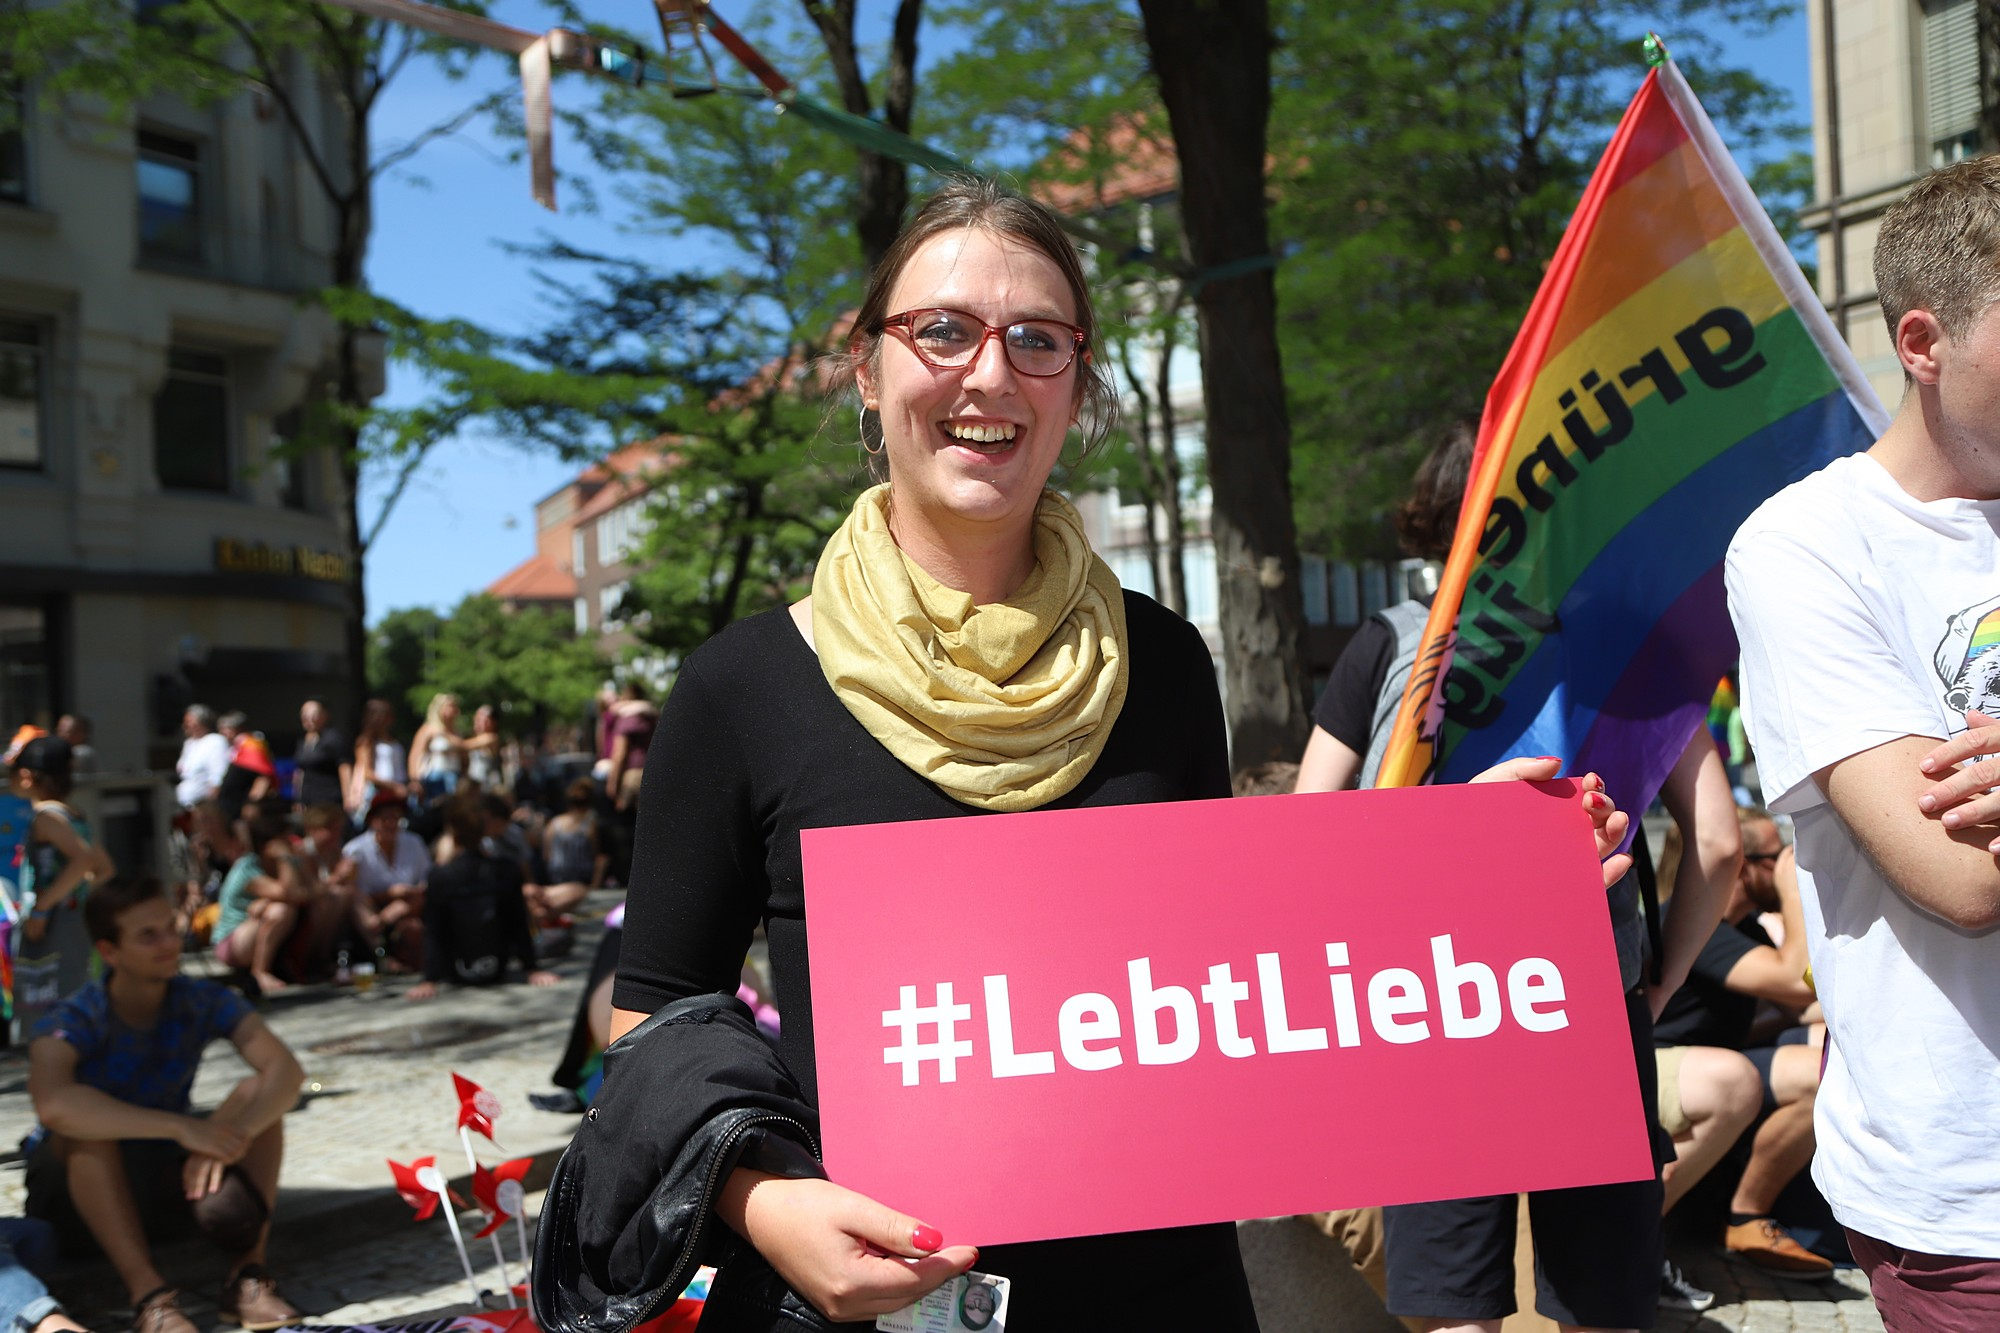 CSD Kiel - Demonstration & Straßenfest / 1041x betrachtet